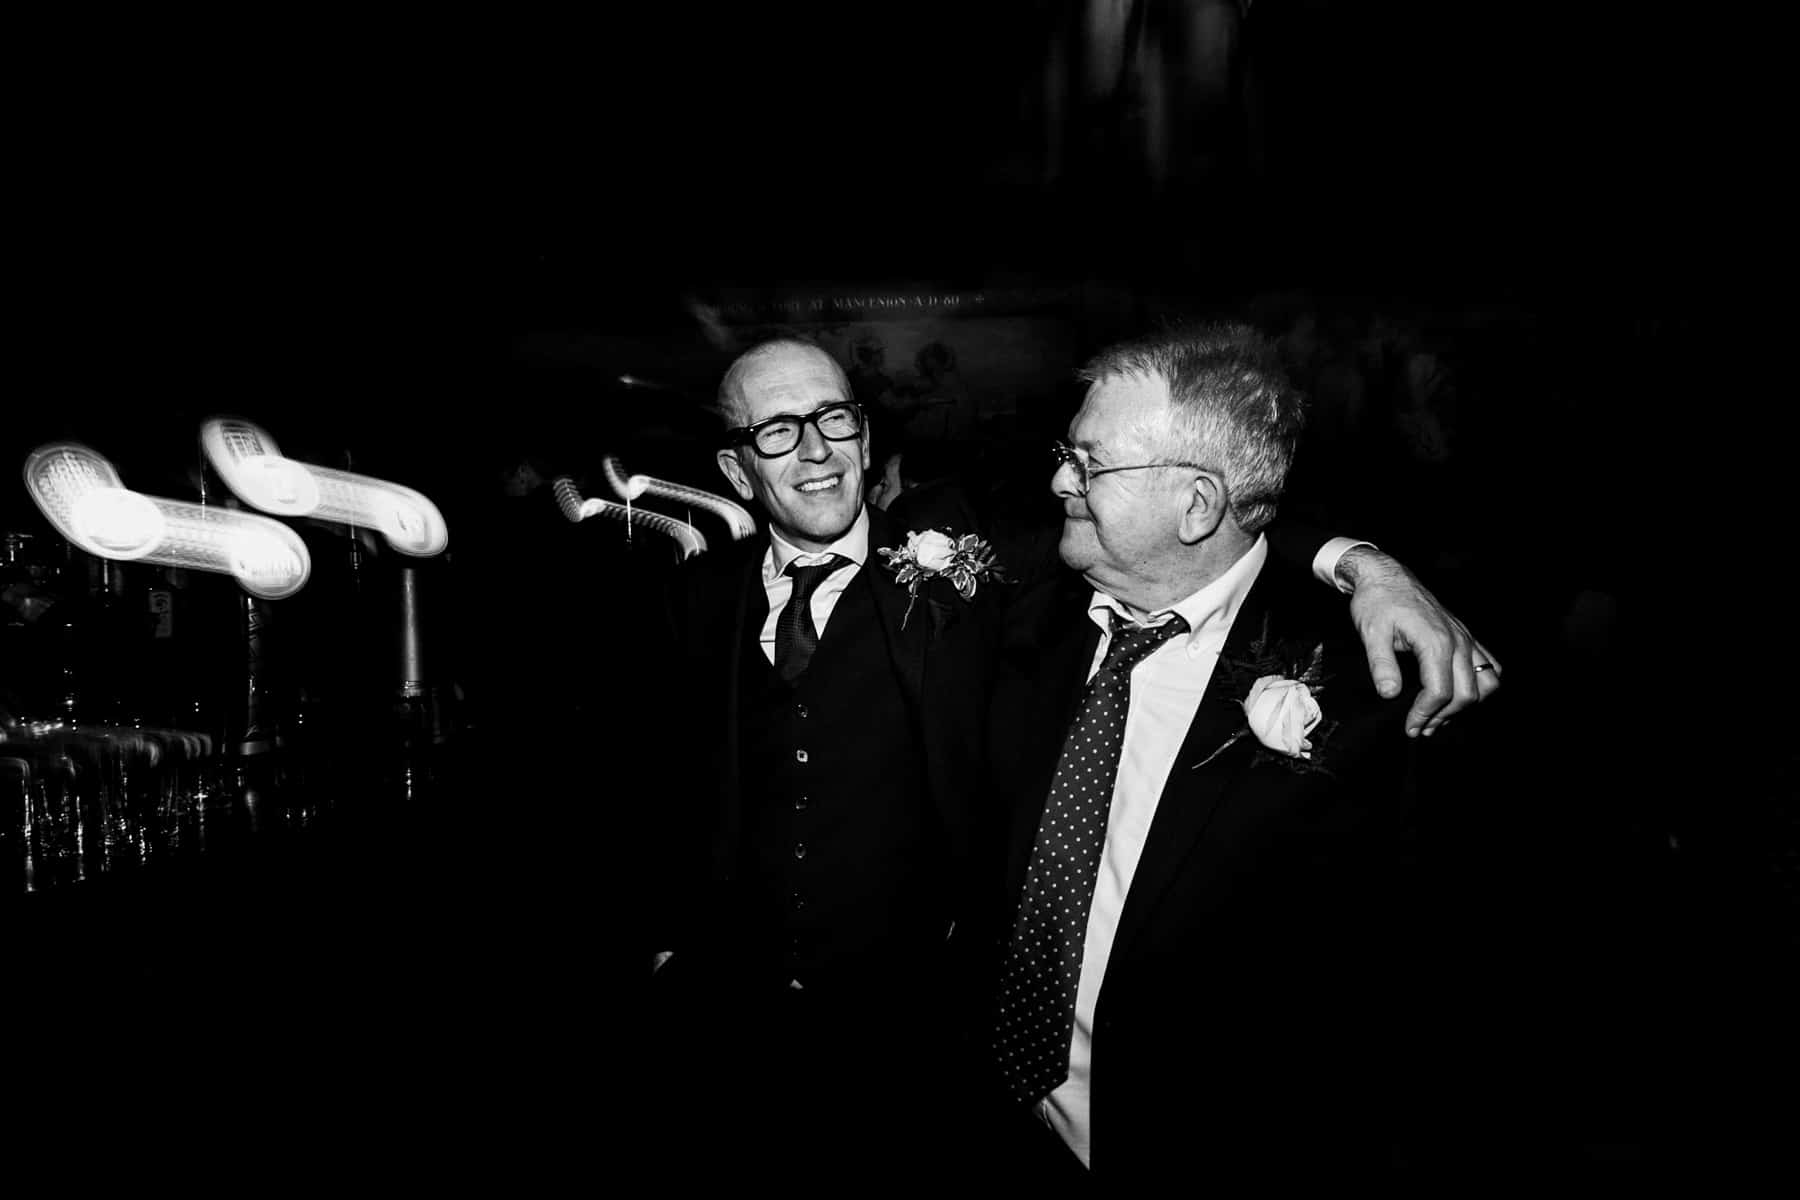 groom and father share a drink